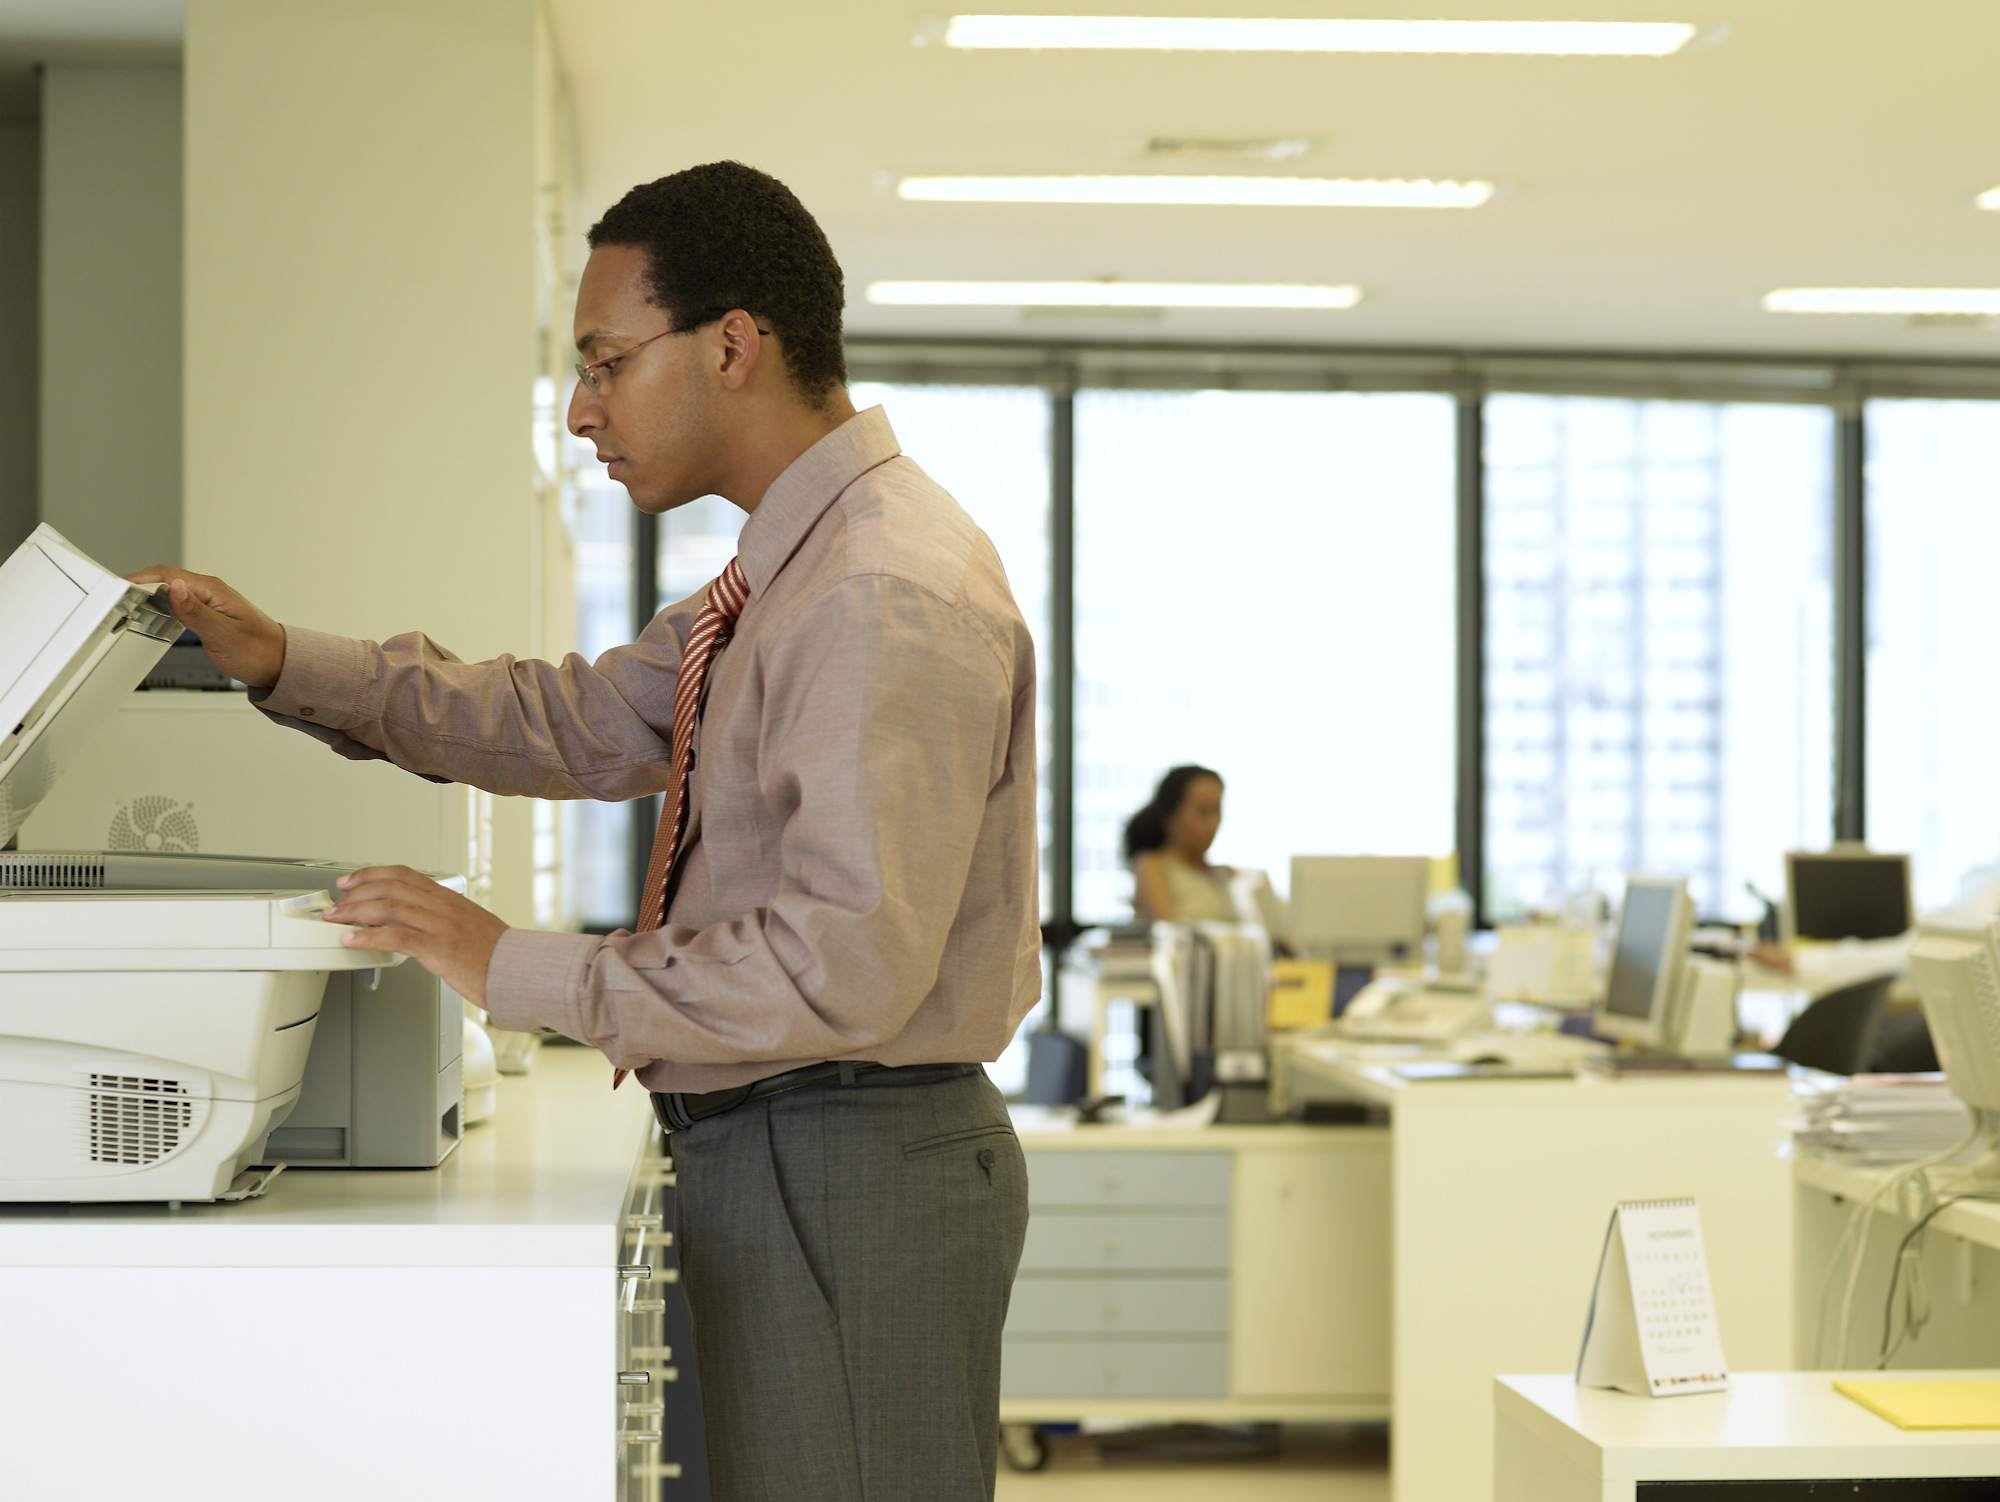 A businessman uses a photocopier in an office.